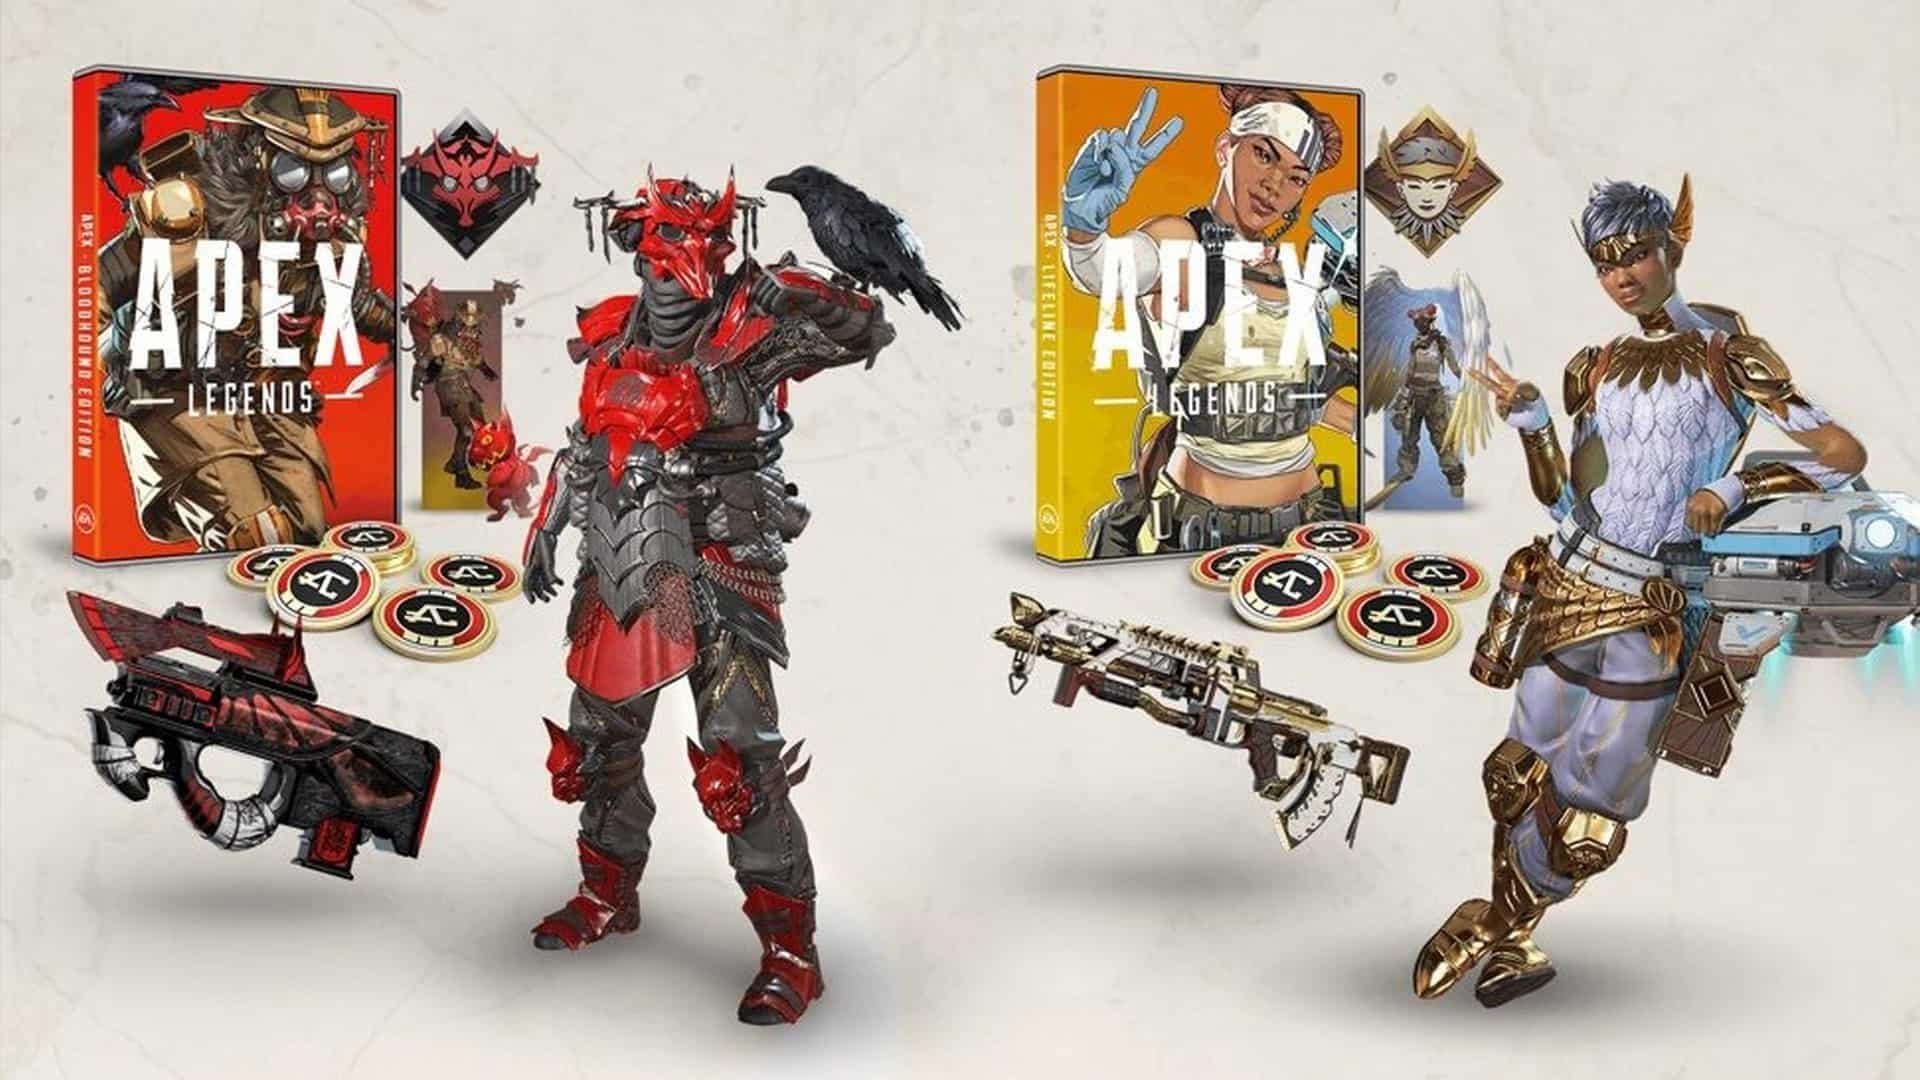 Apex Legends Drops Two Special Edition Retail Bundles – Available In Stores Today